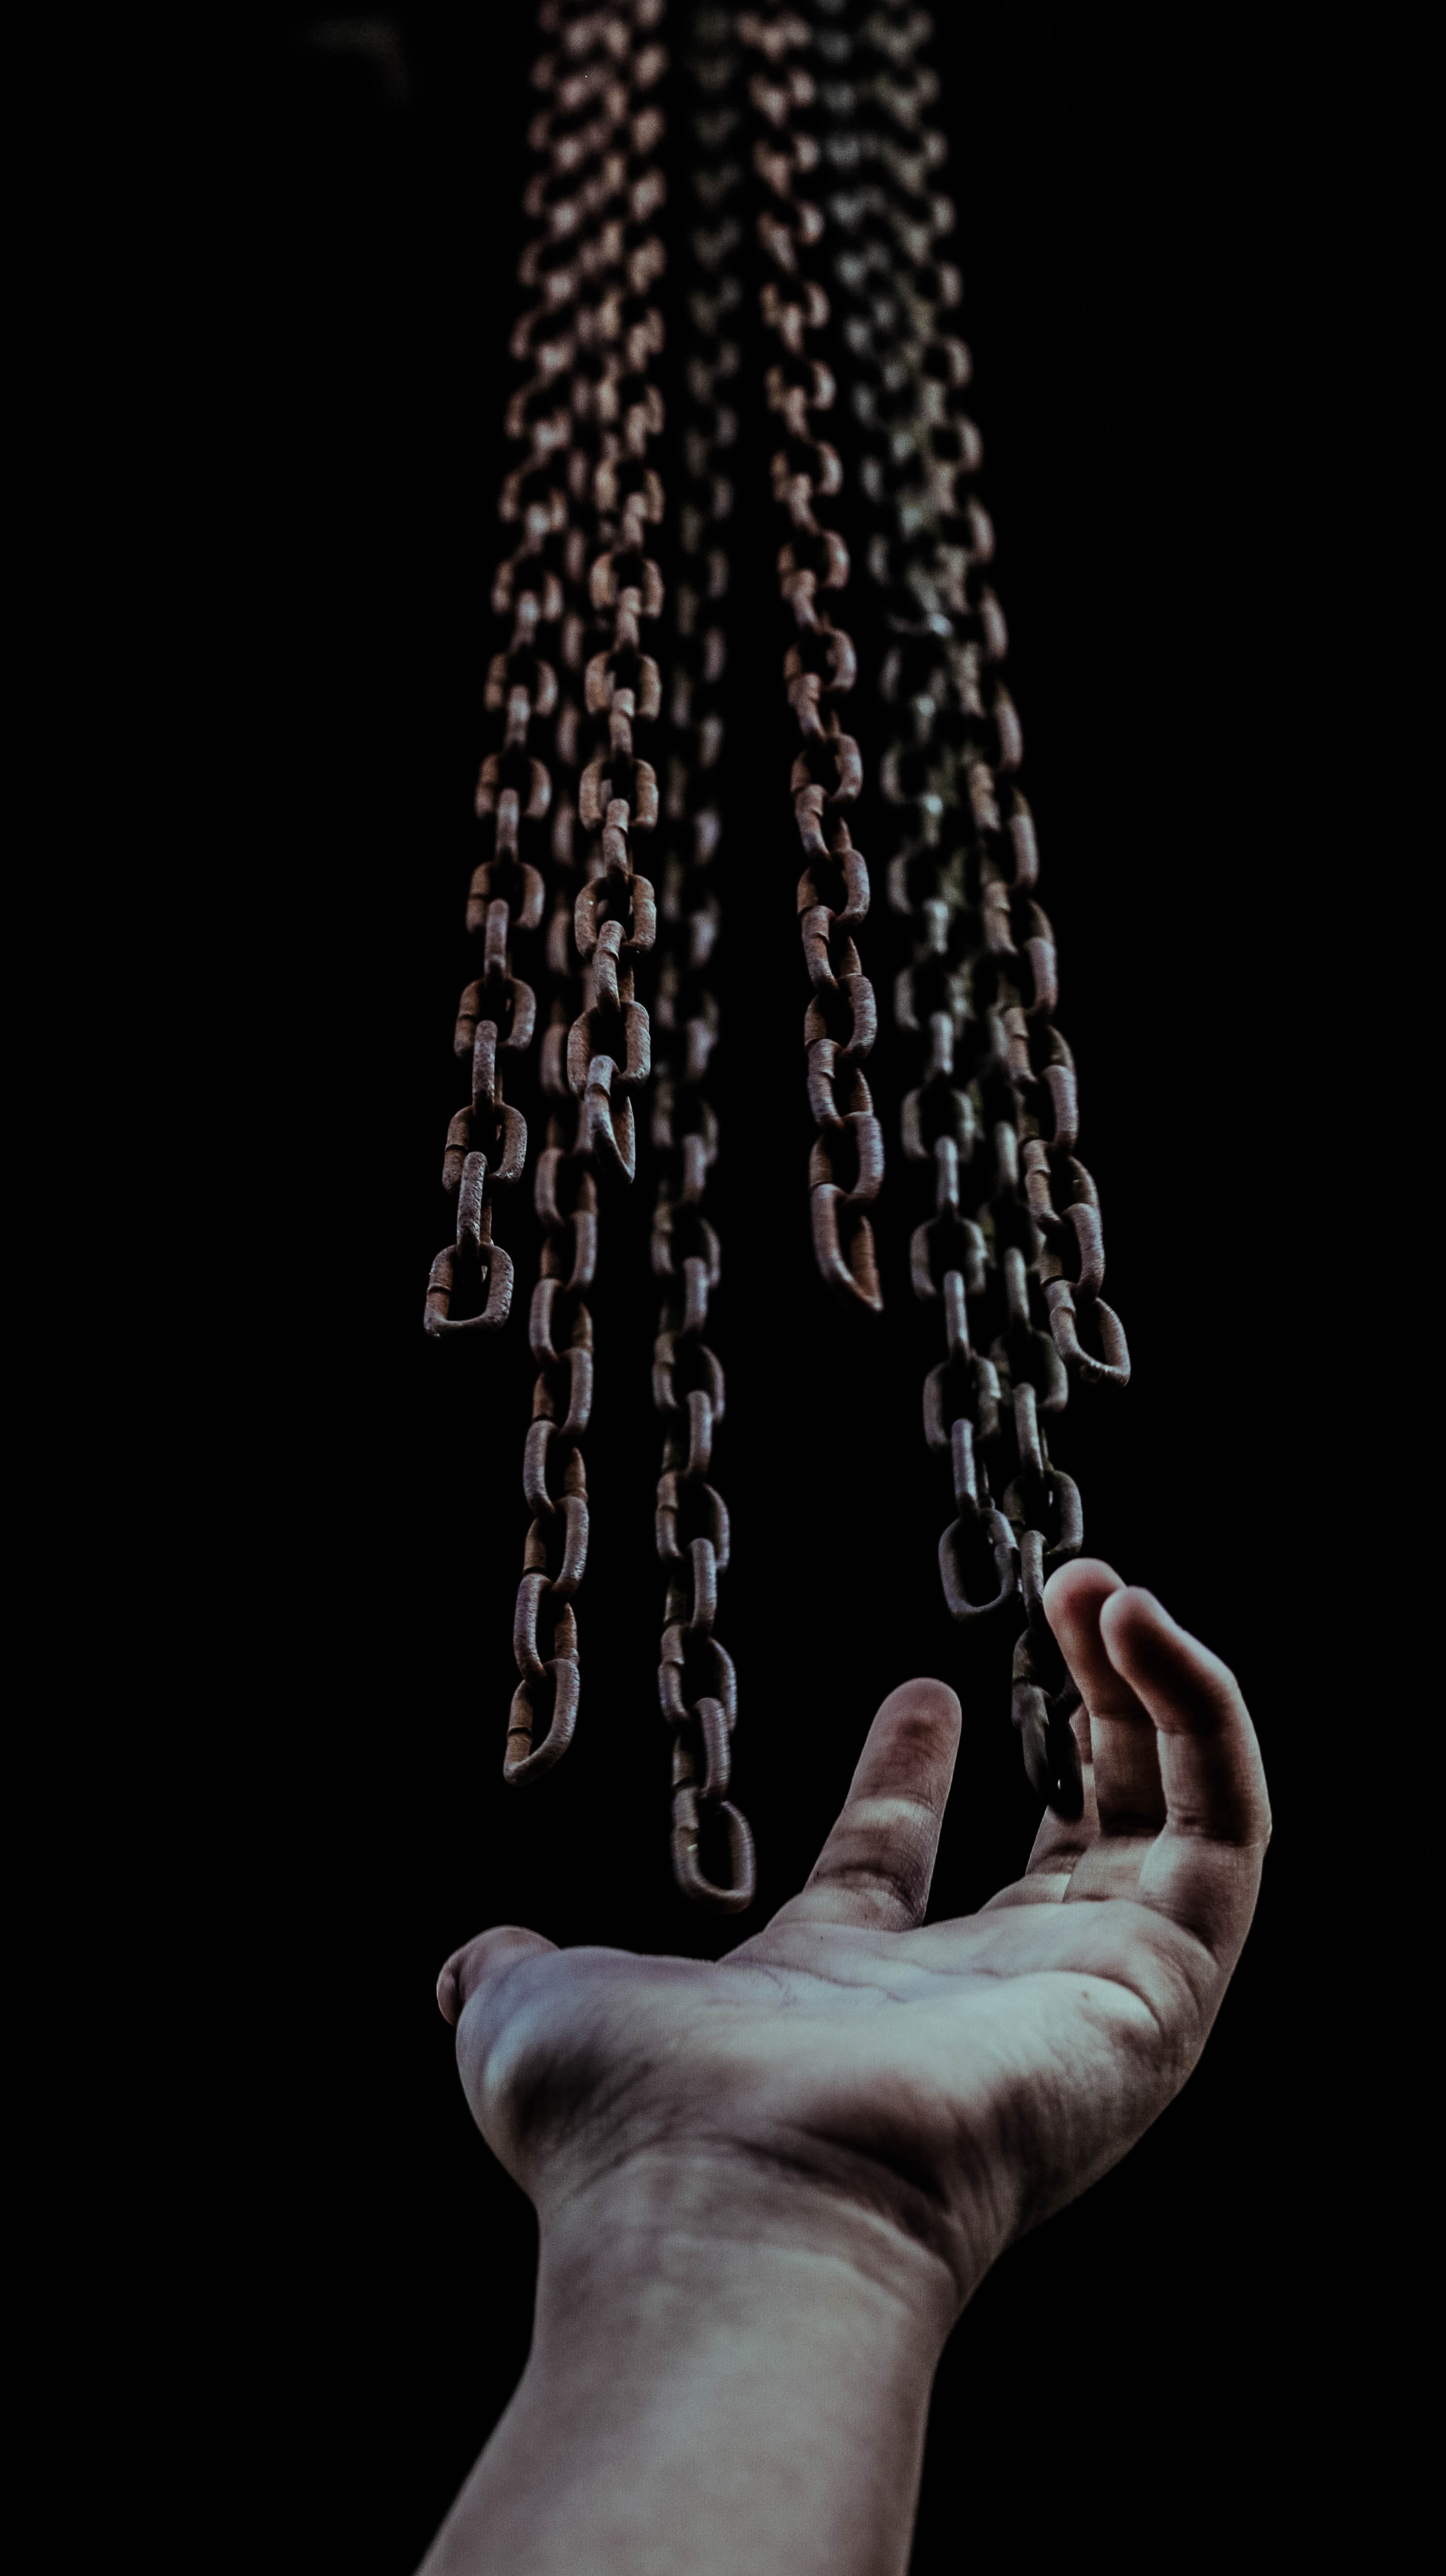 Image of a hand open beneath hanging chains.